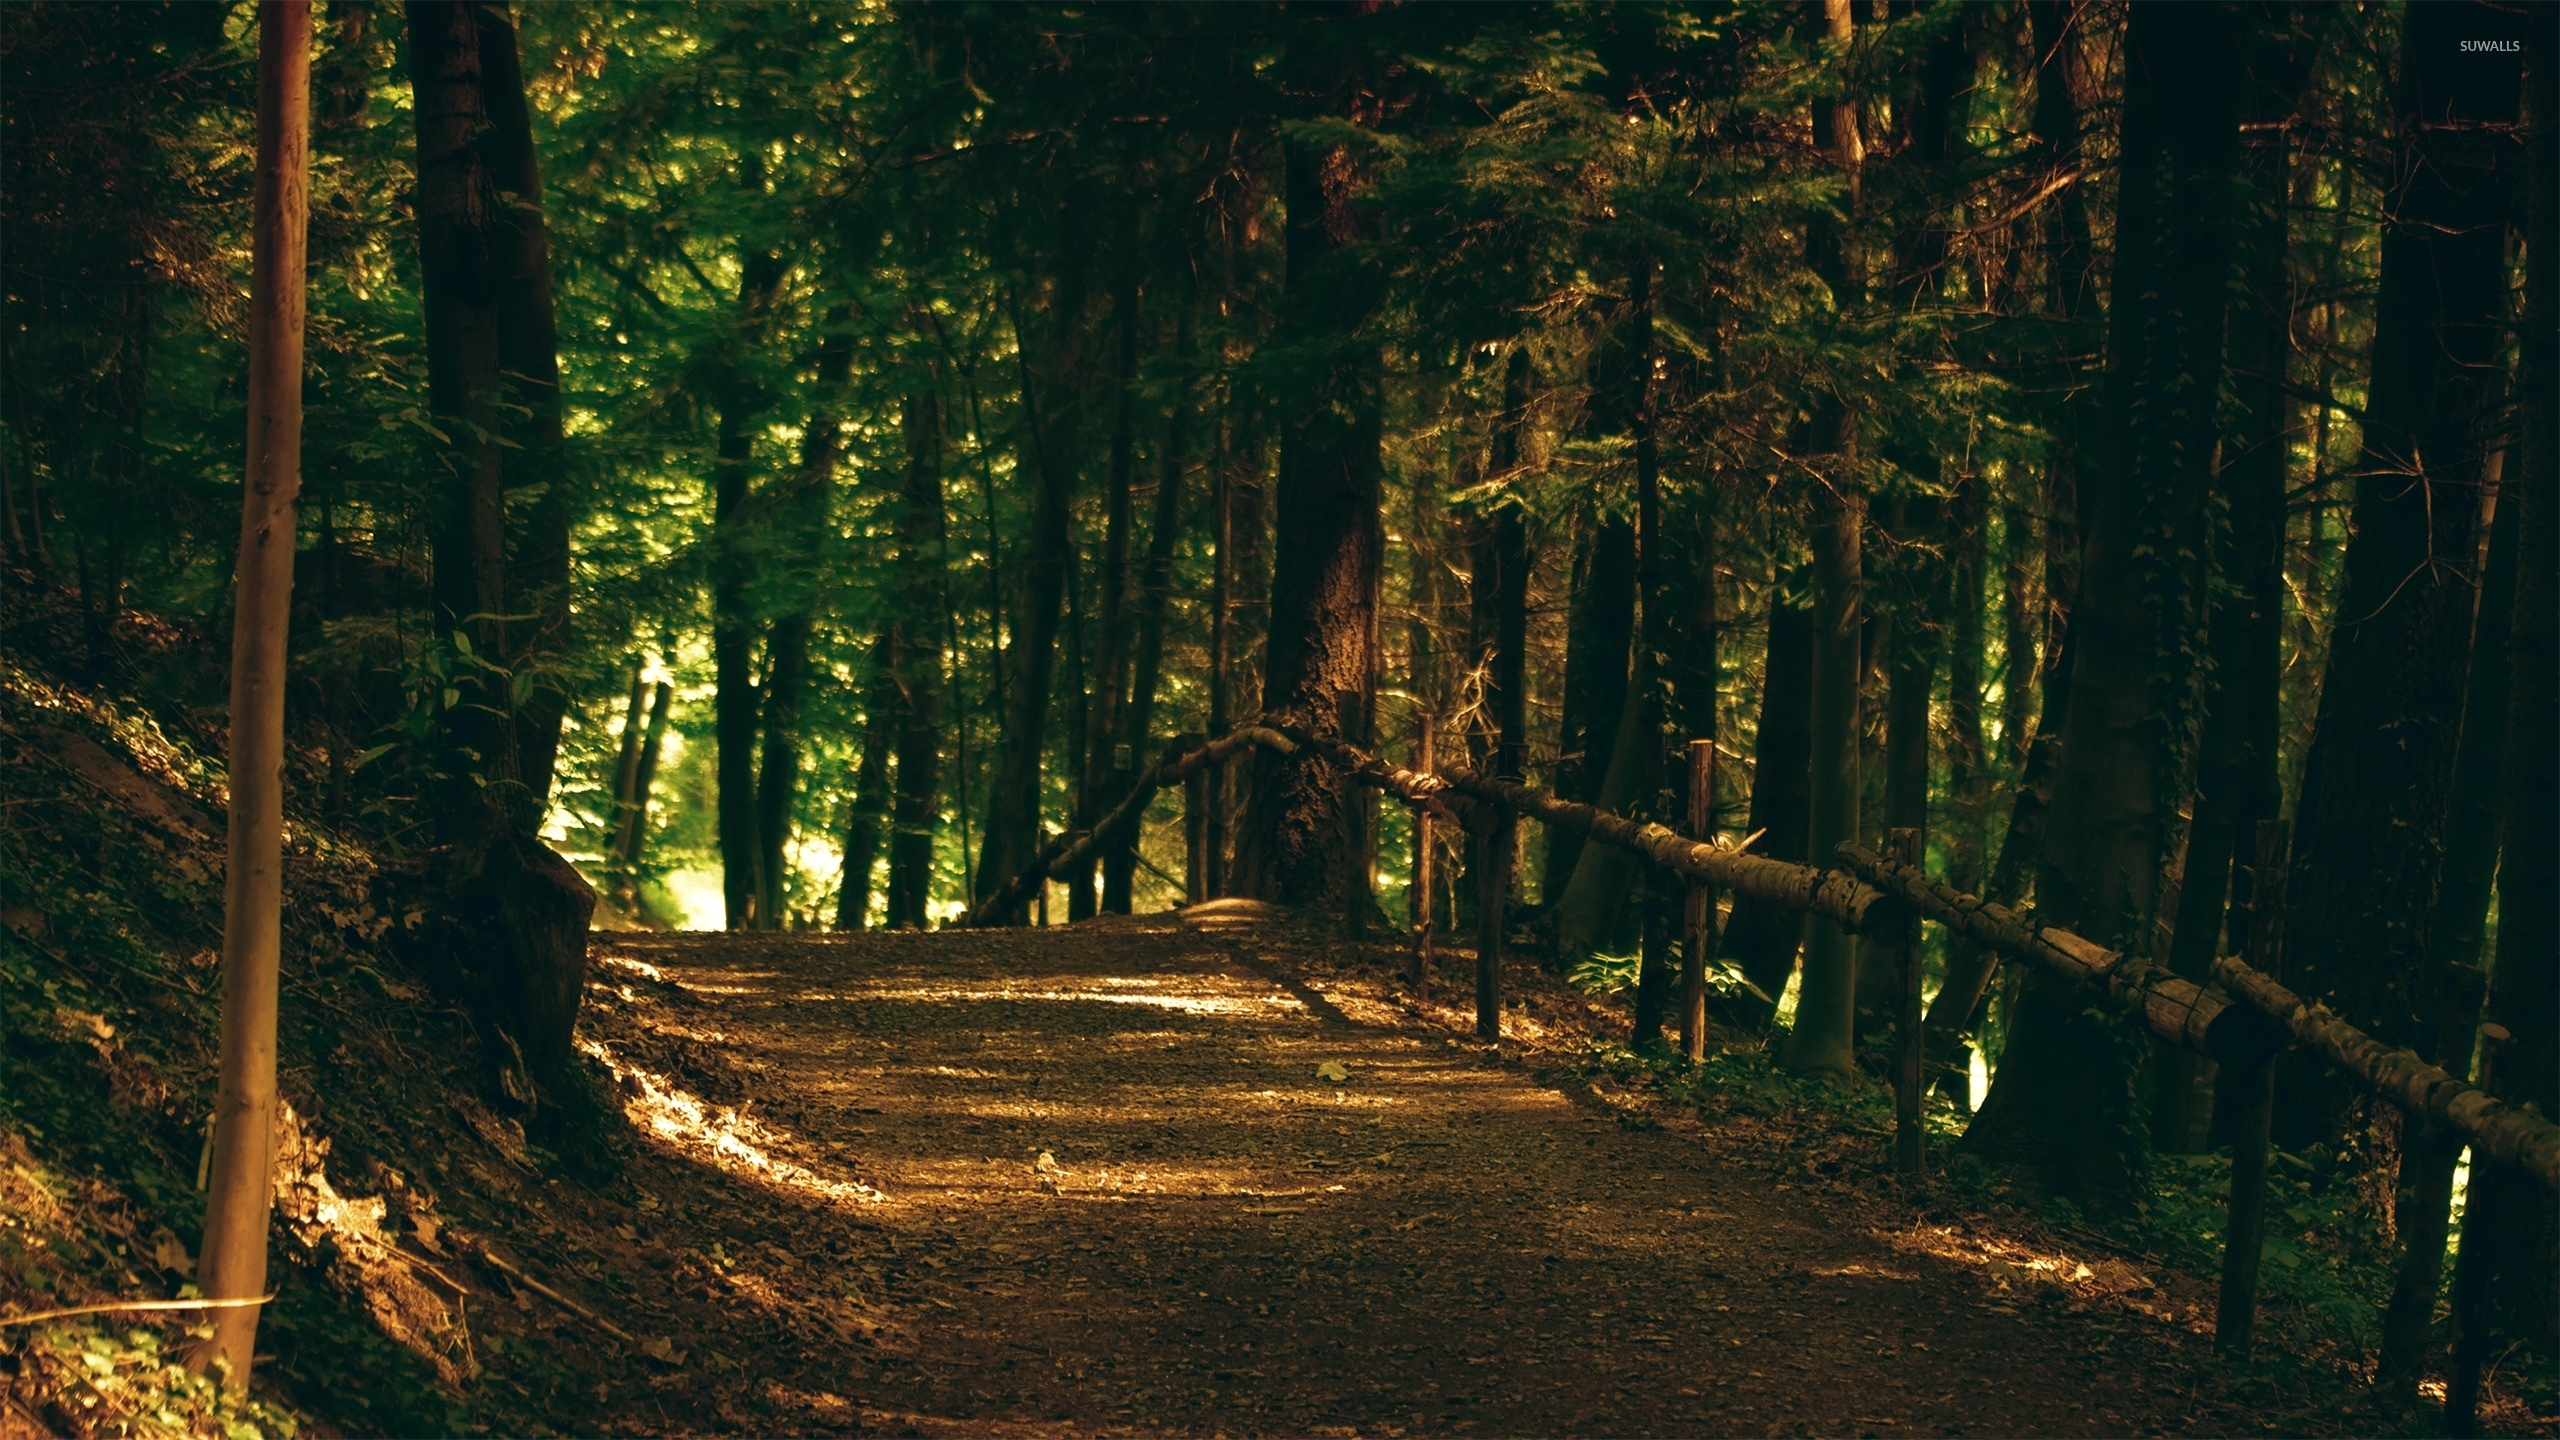 Gorgeous woods wallpaper - Nature wallpapers - #35821